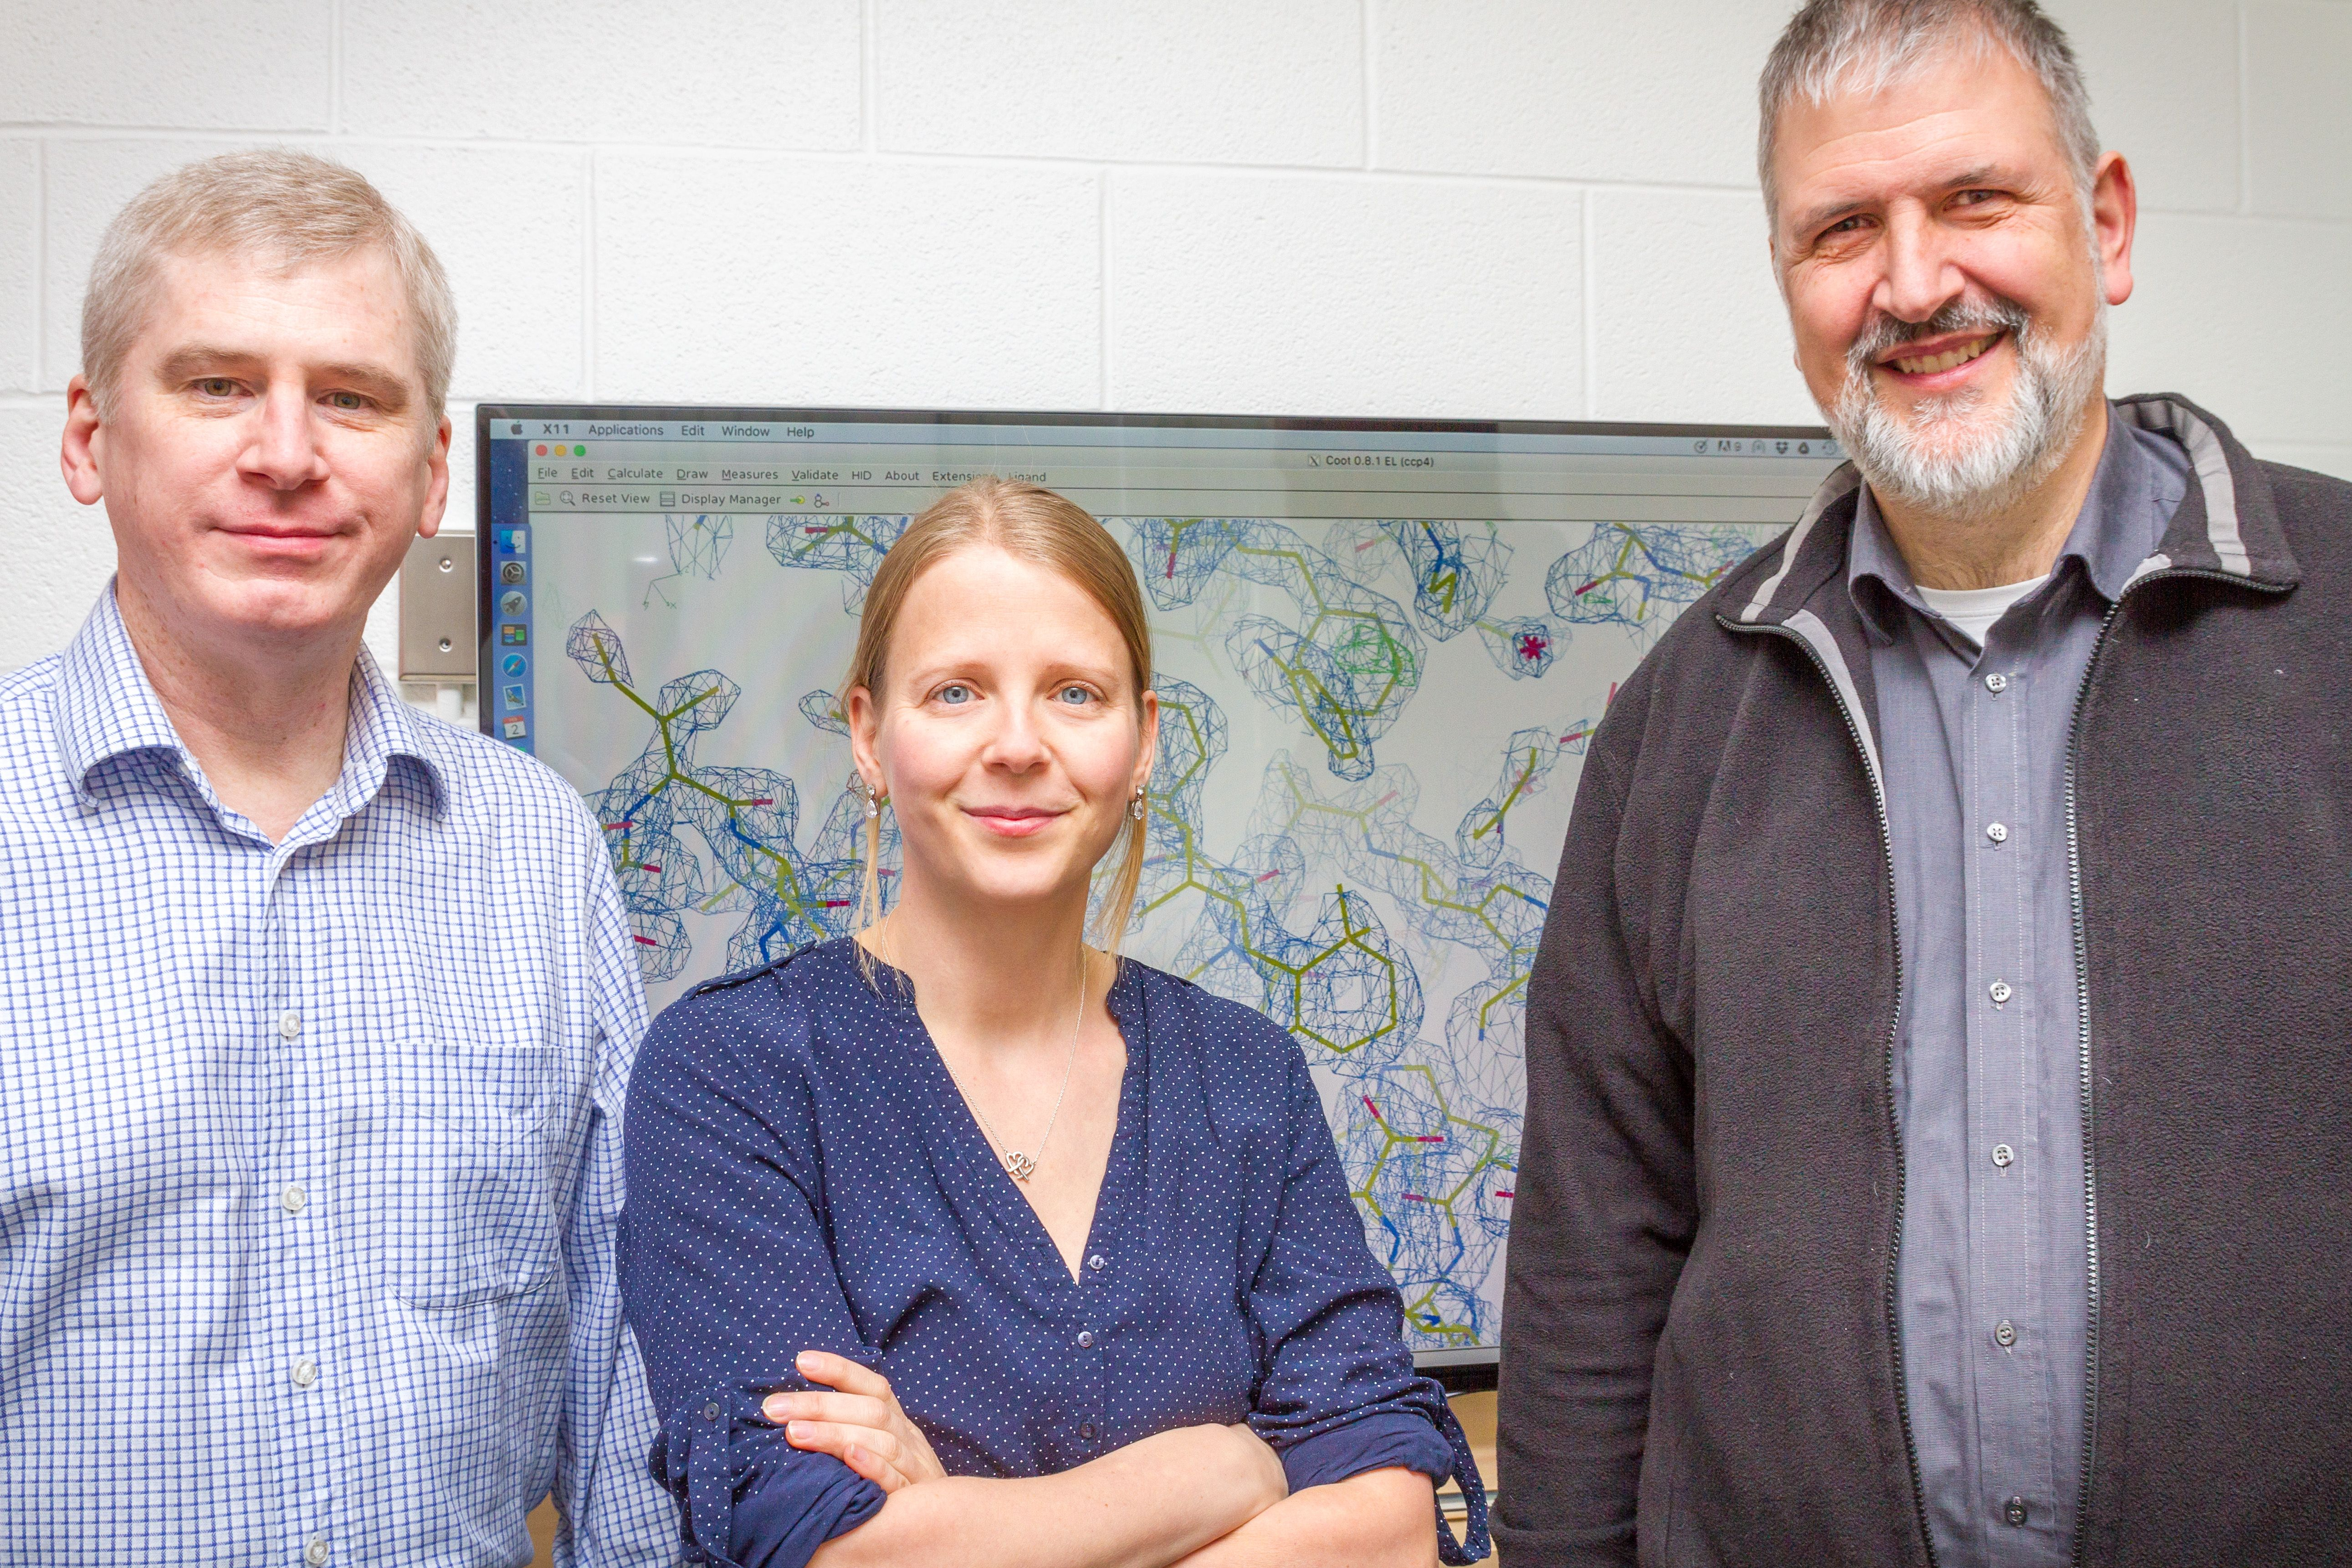 From left, authors Bryan T. Eger, Jana Broecker, and Prof. Oliver P. Ernst